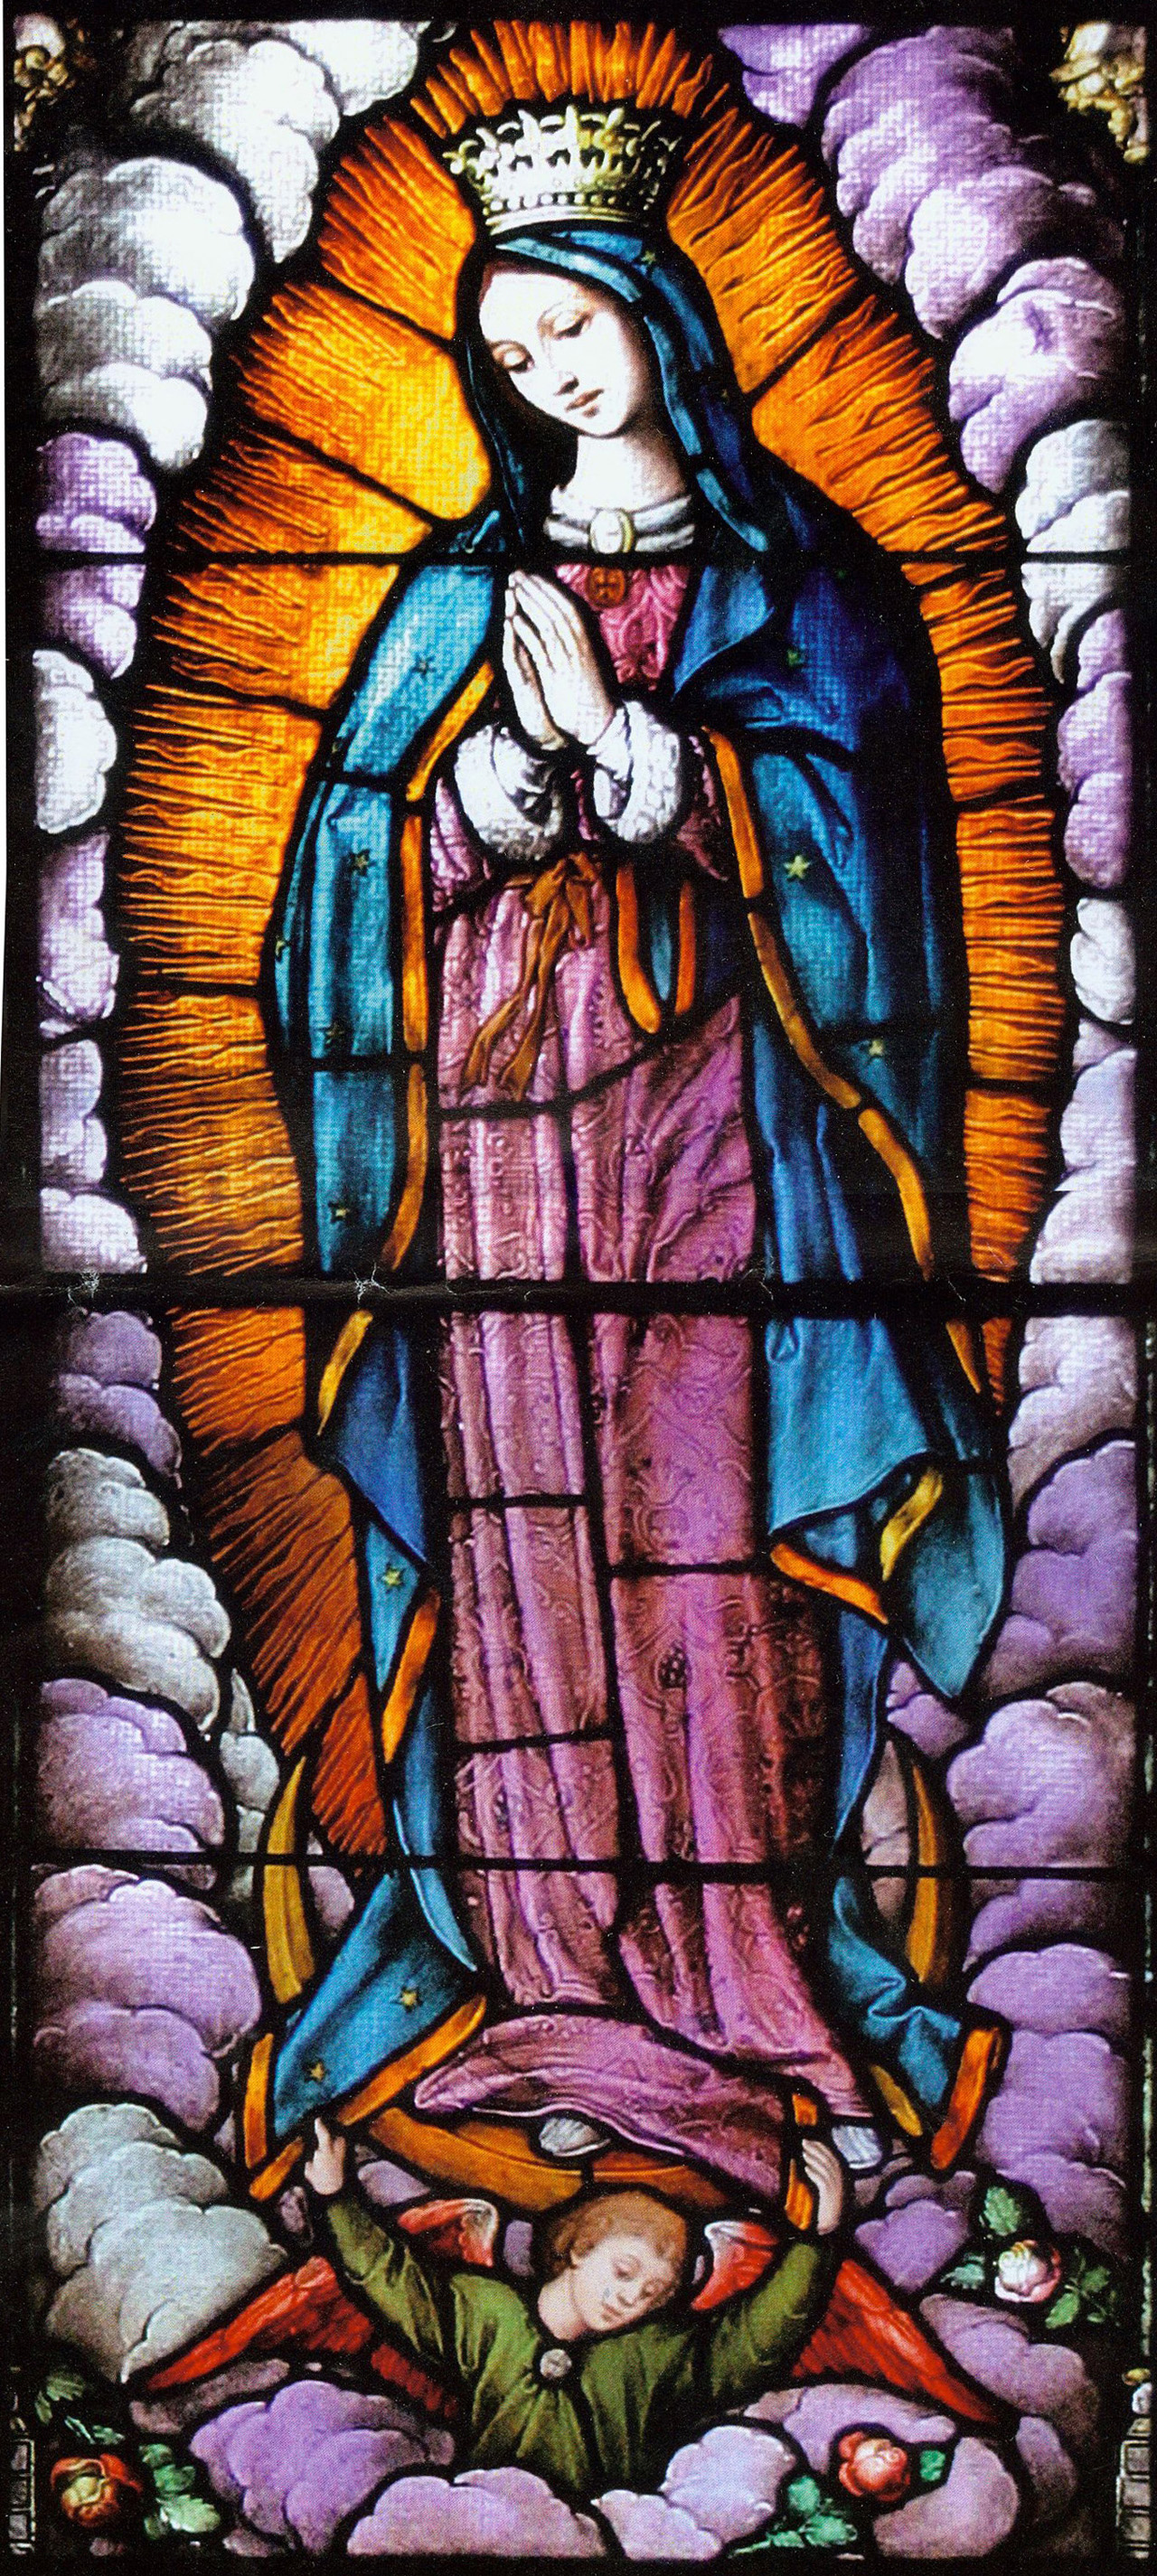 Large close-up on Mary praying with purple cloud frame